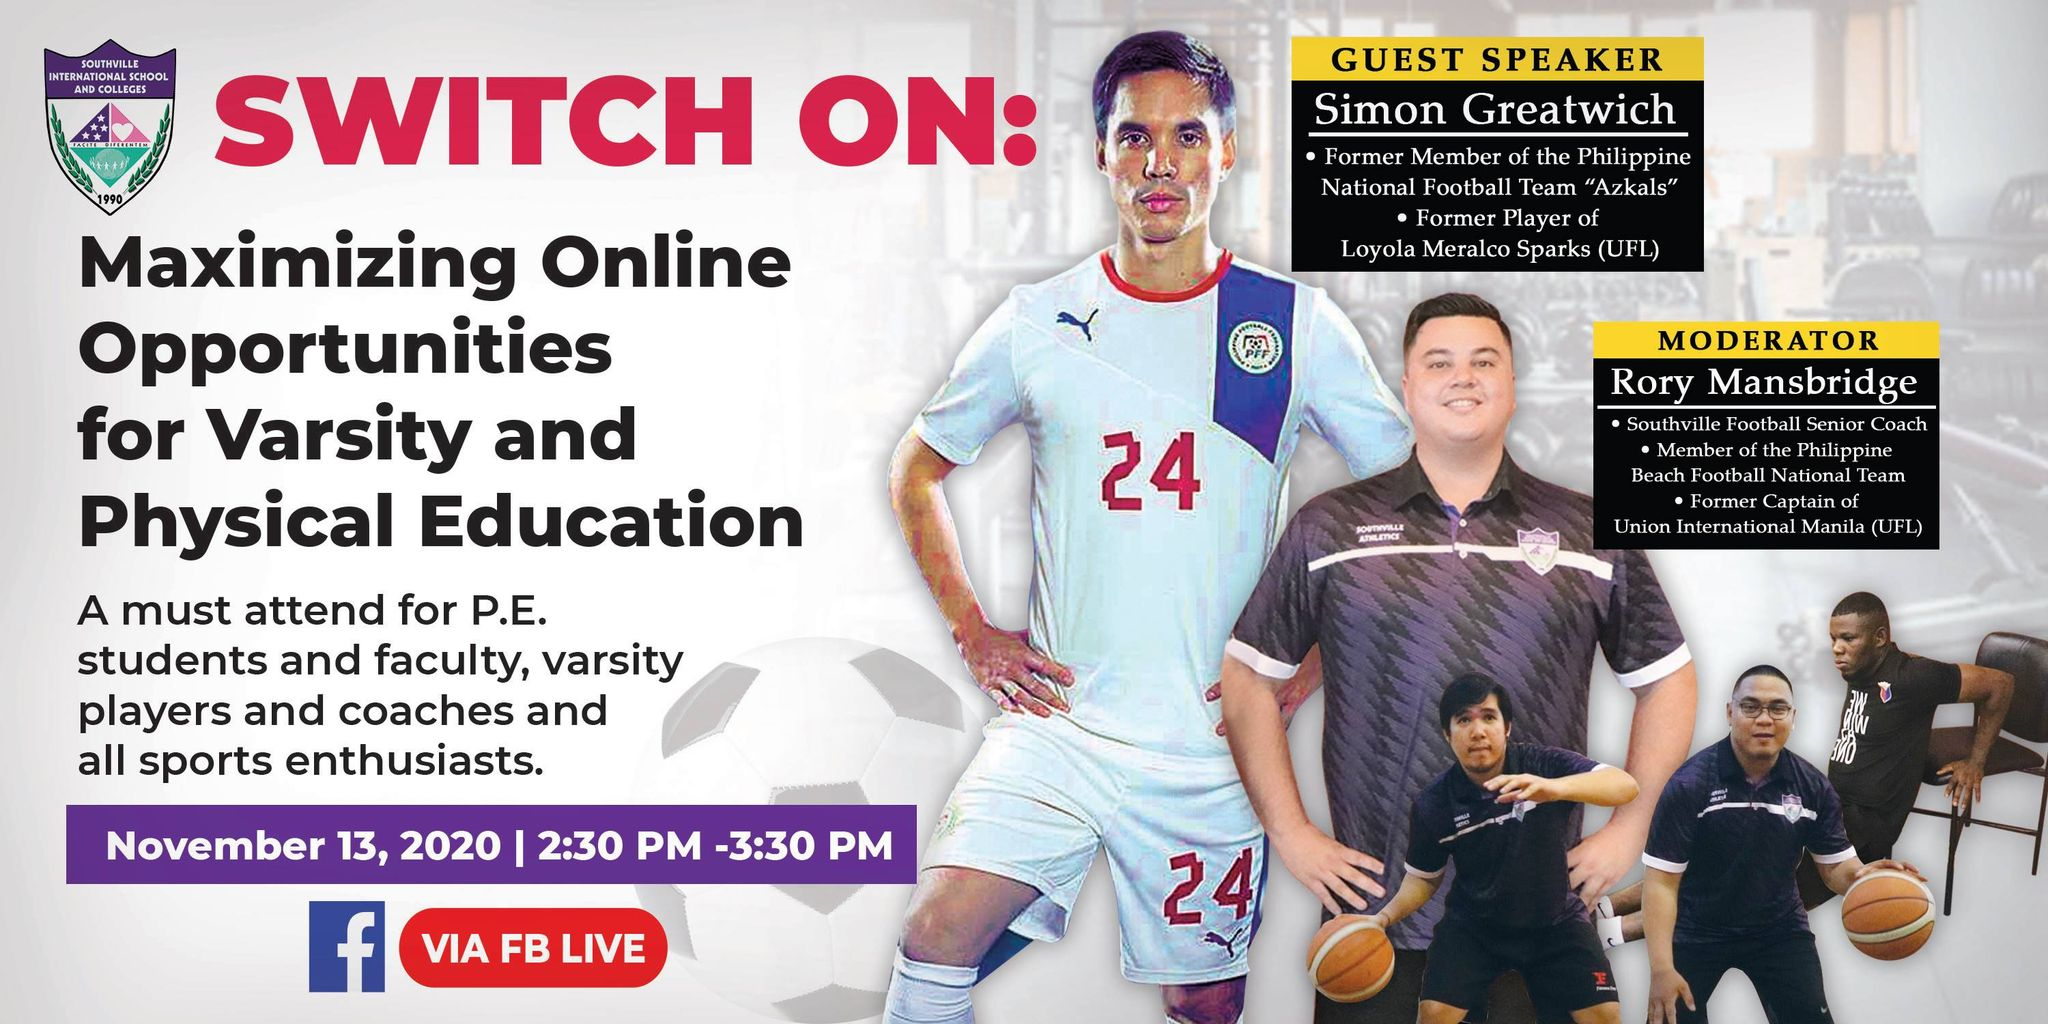 SWITCH ON: Maximizing Online Opportunities for Varsity and Physical Education